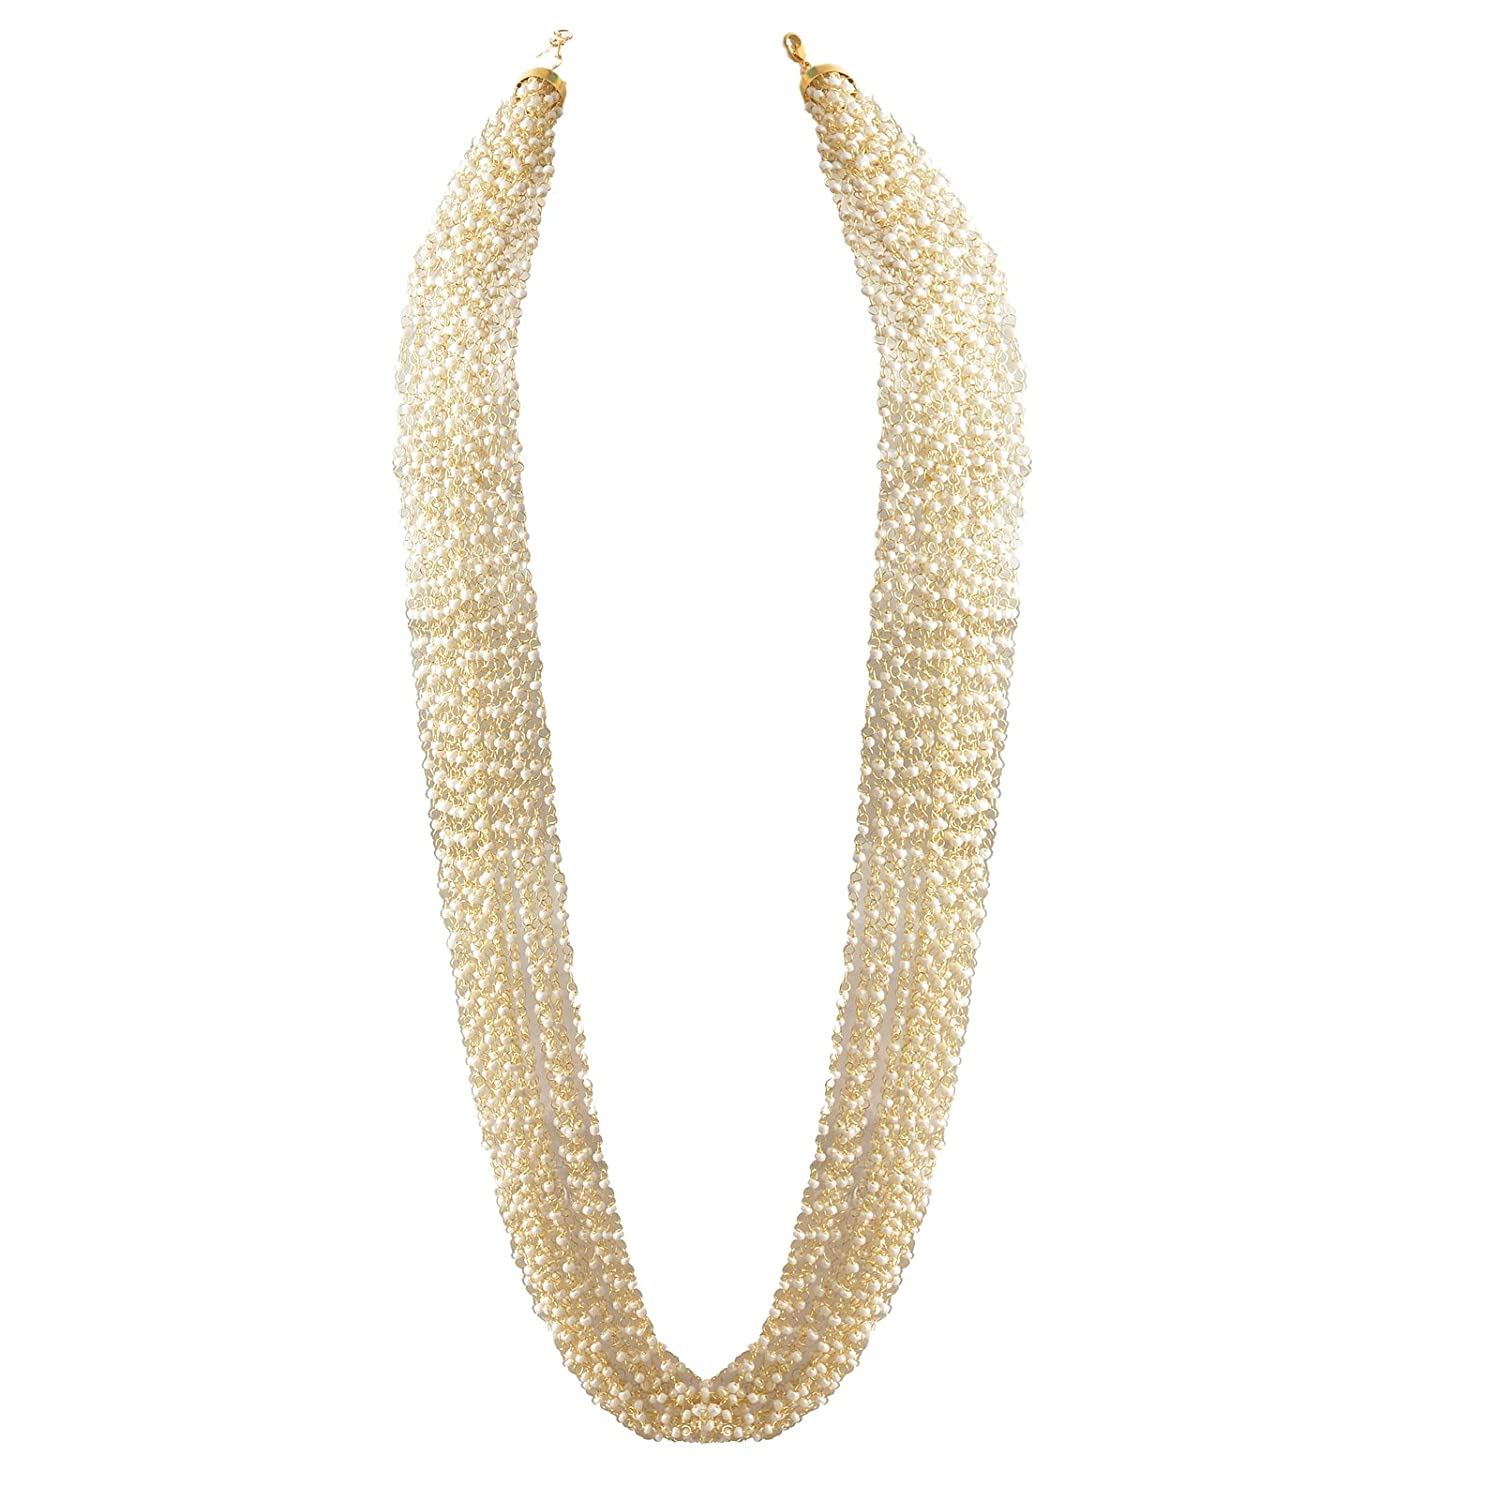 White JAN-357 Zephyrr Multi-Strand Necklace for Women